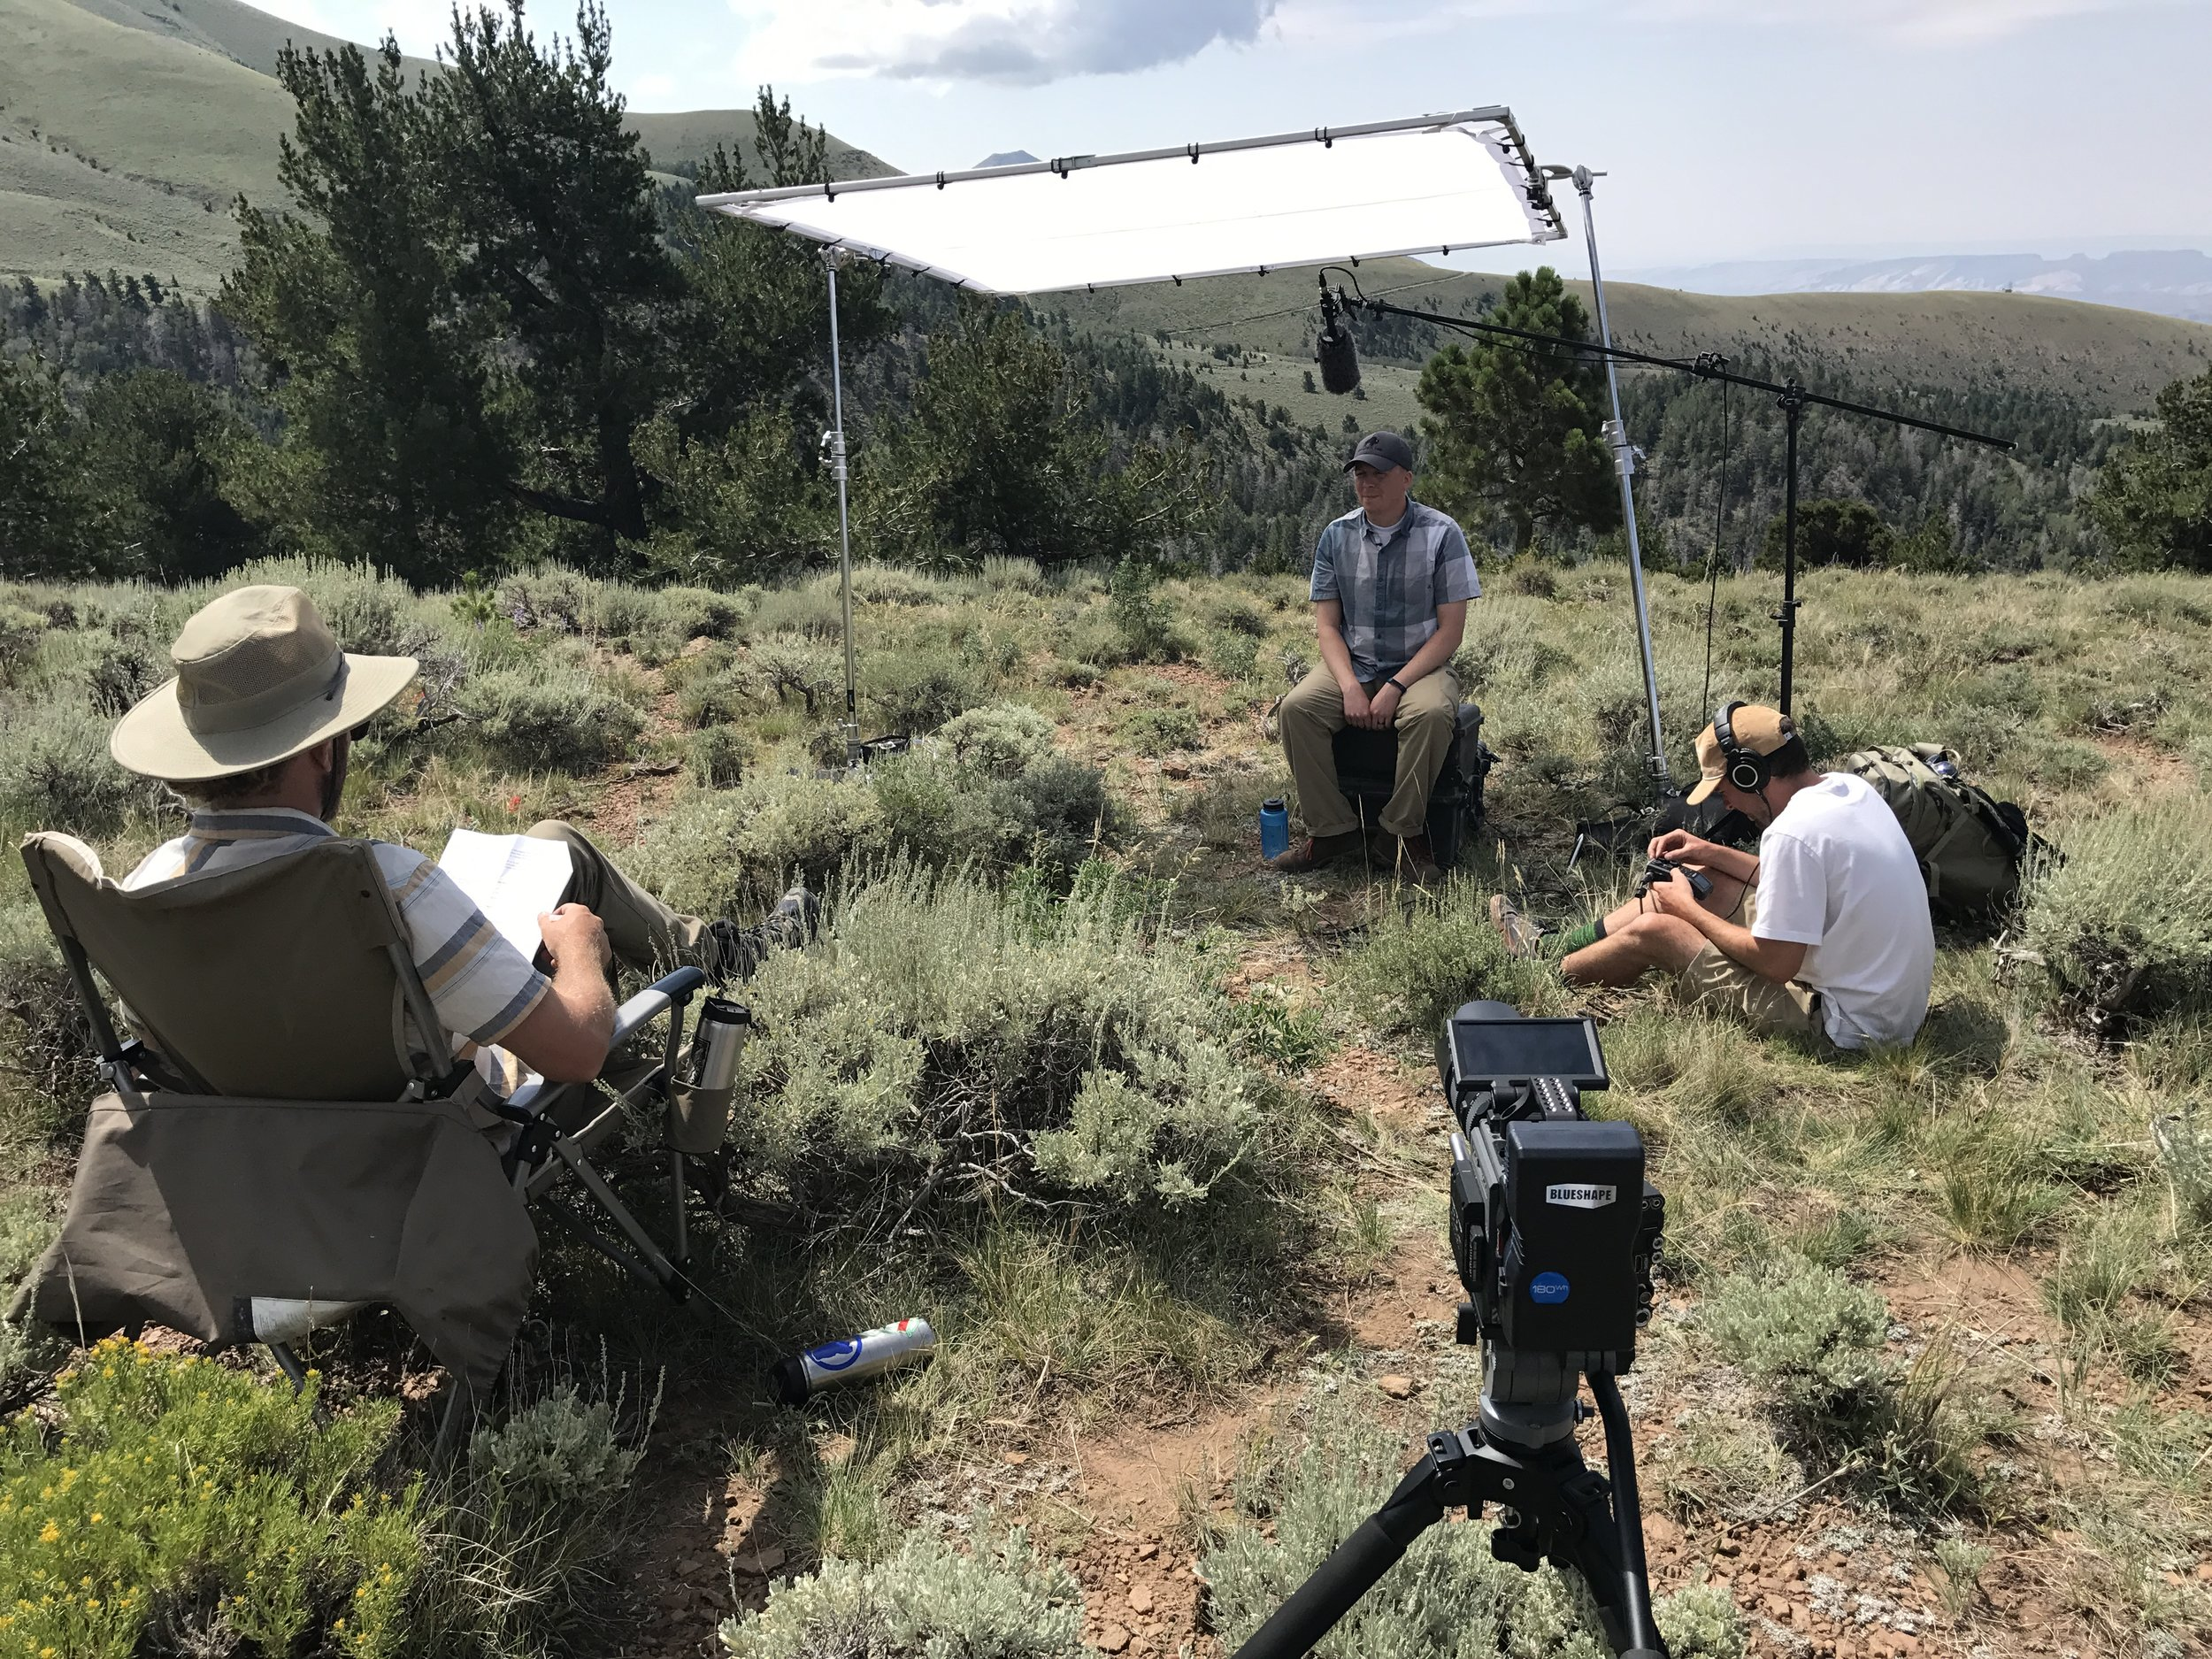 Dr. Dustin Ranglack, interviewed on location in the Henry Mountains